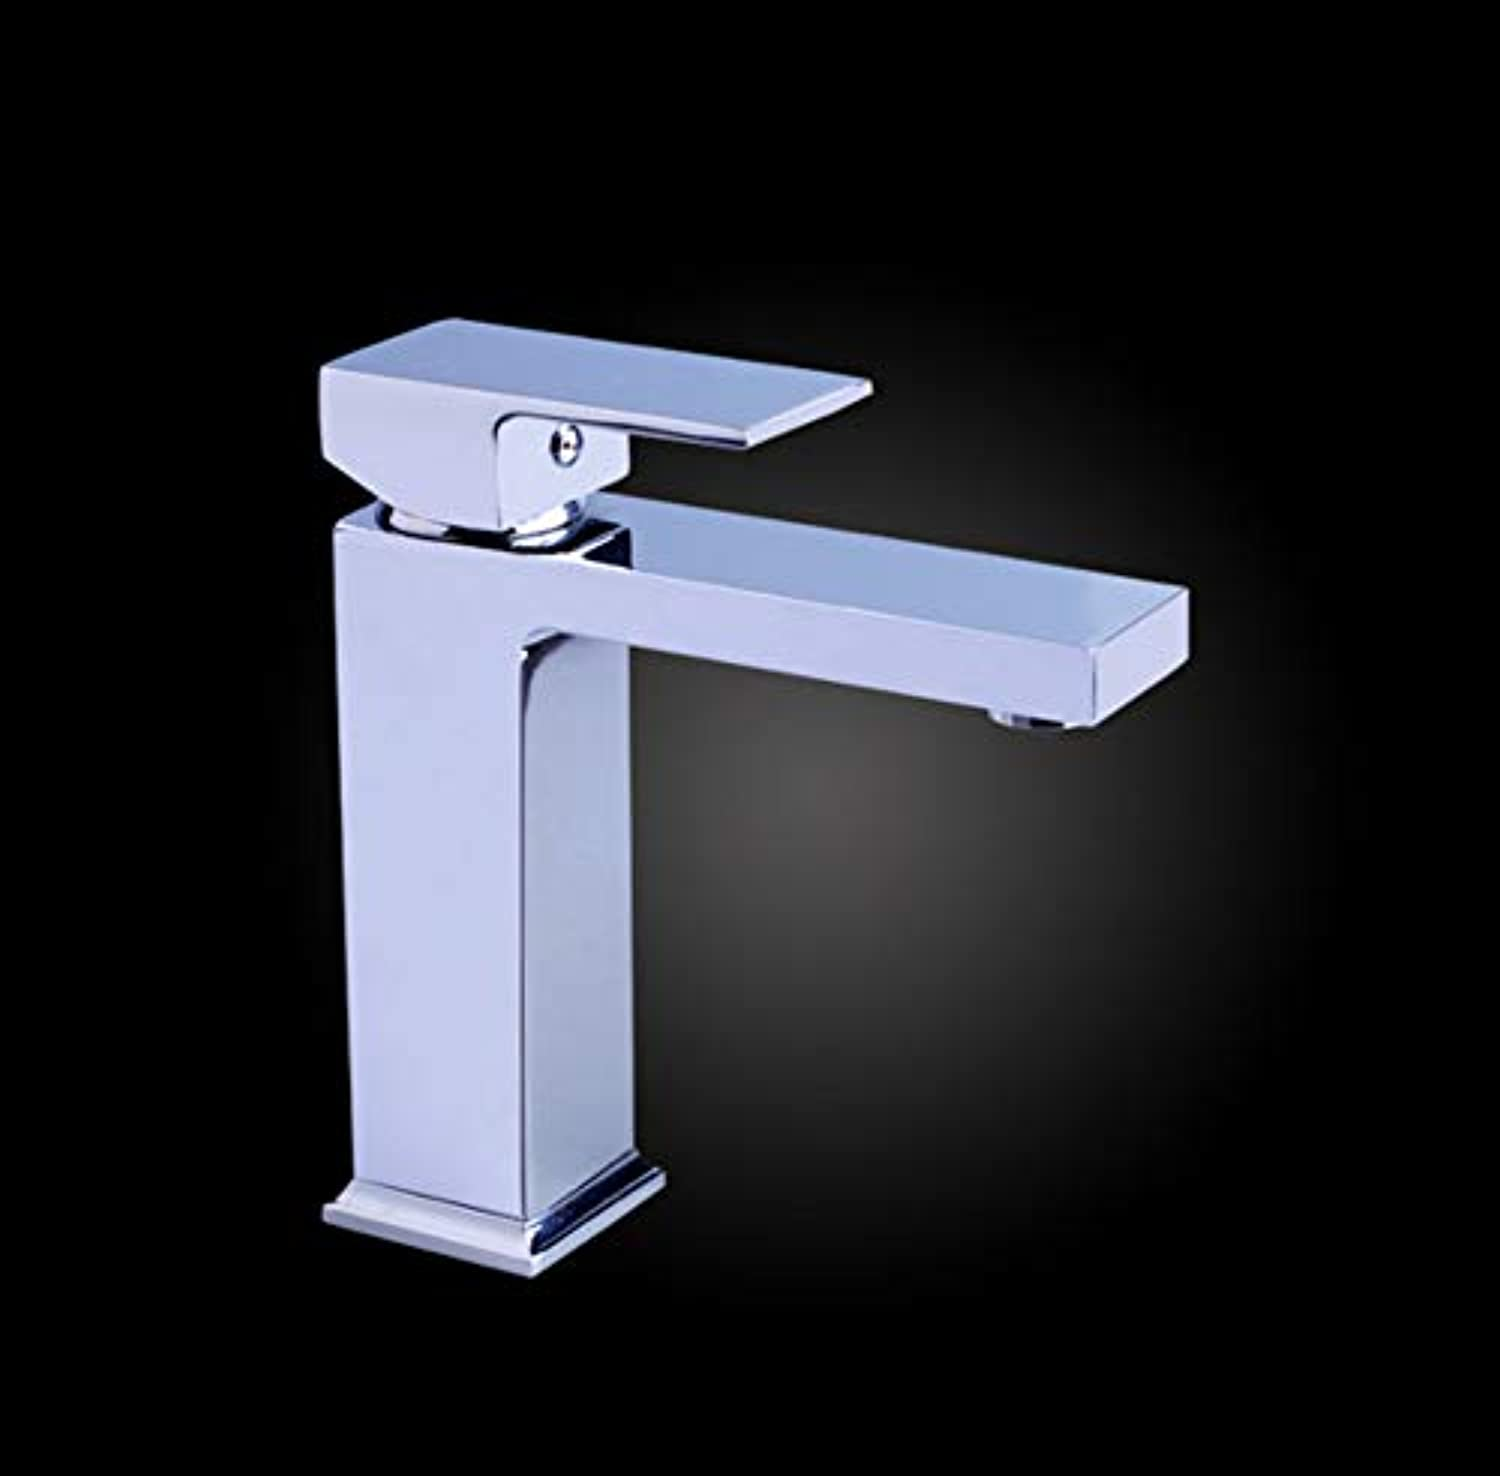 Xiujie Faucet New Home Hotel Basin Faucet Hot and Cold Single Hole Copper Square High-End Faucet 19Cm